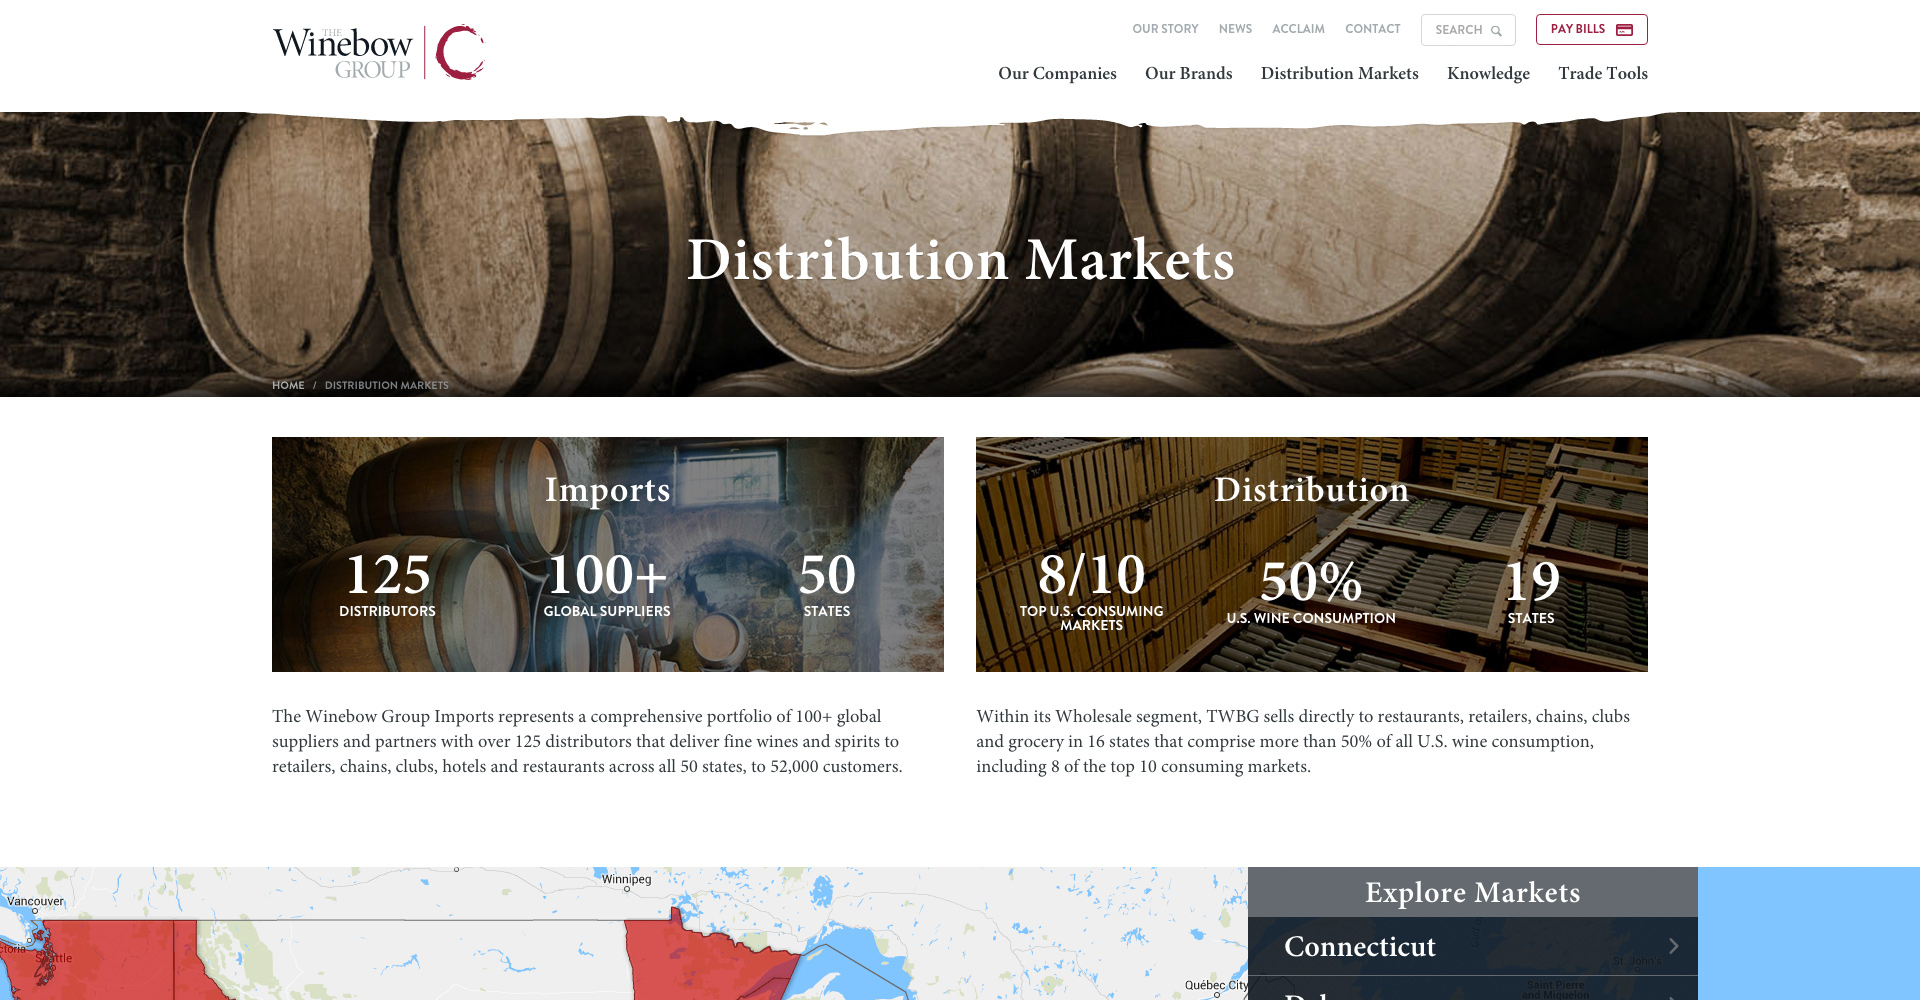 the winebow distribution markets page